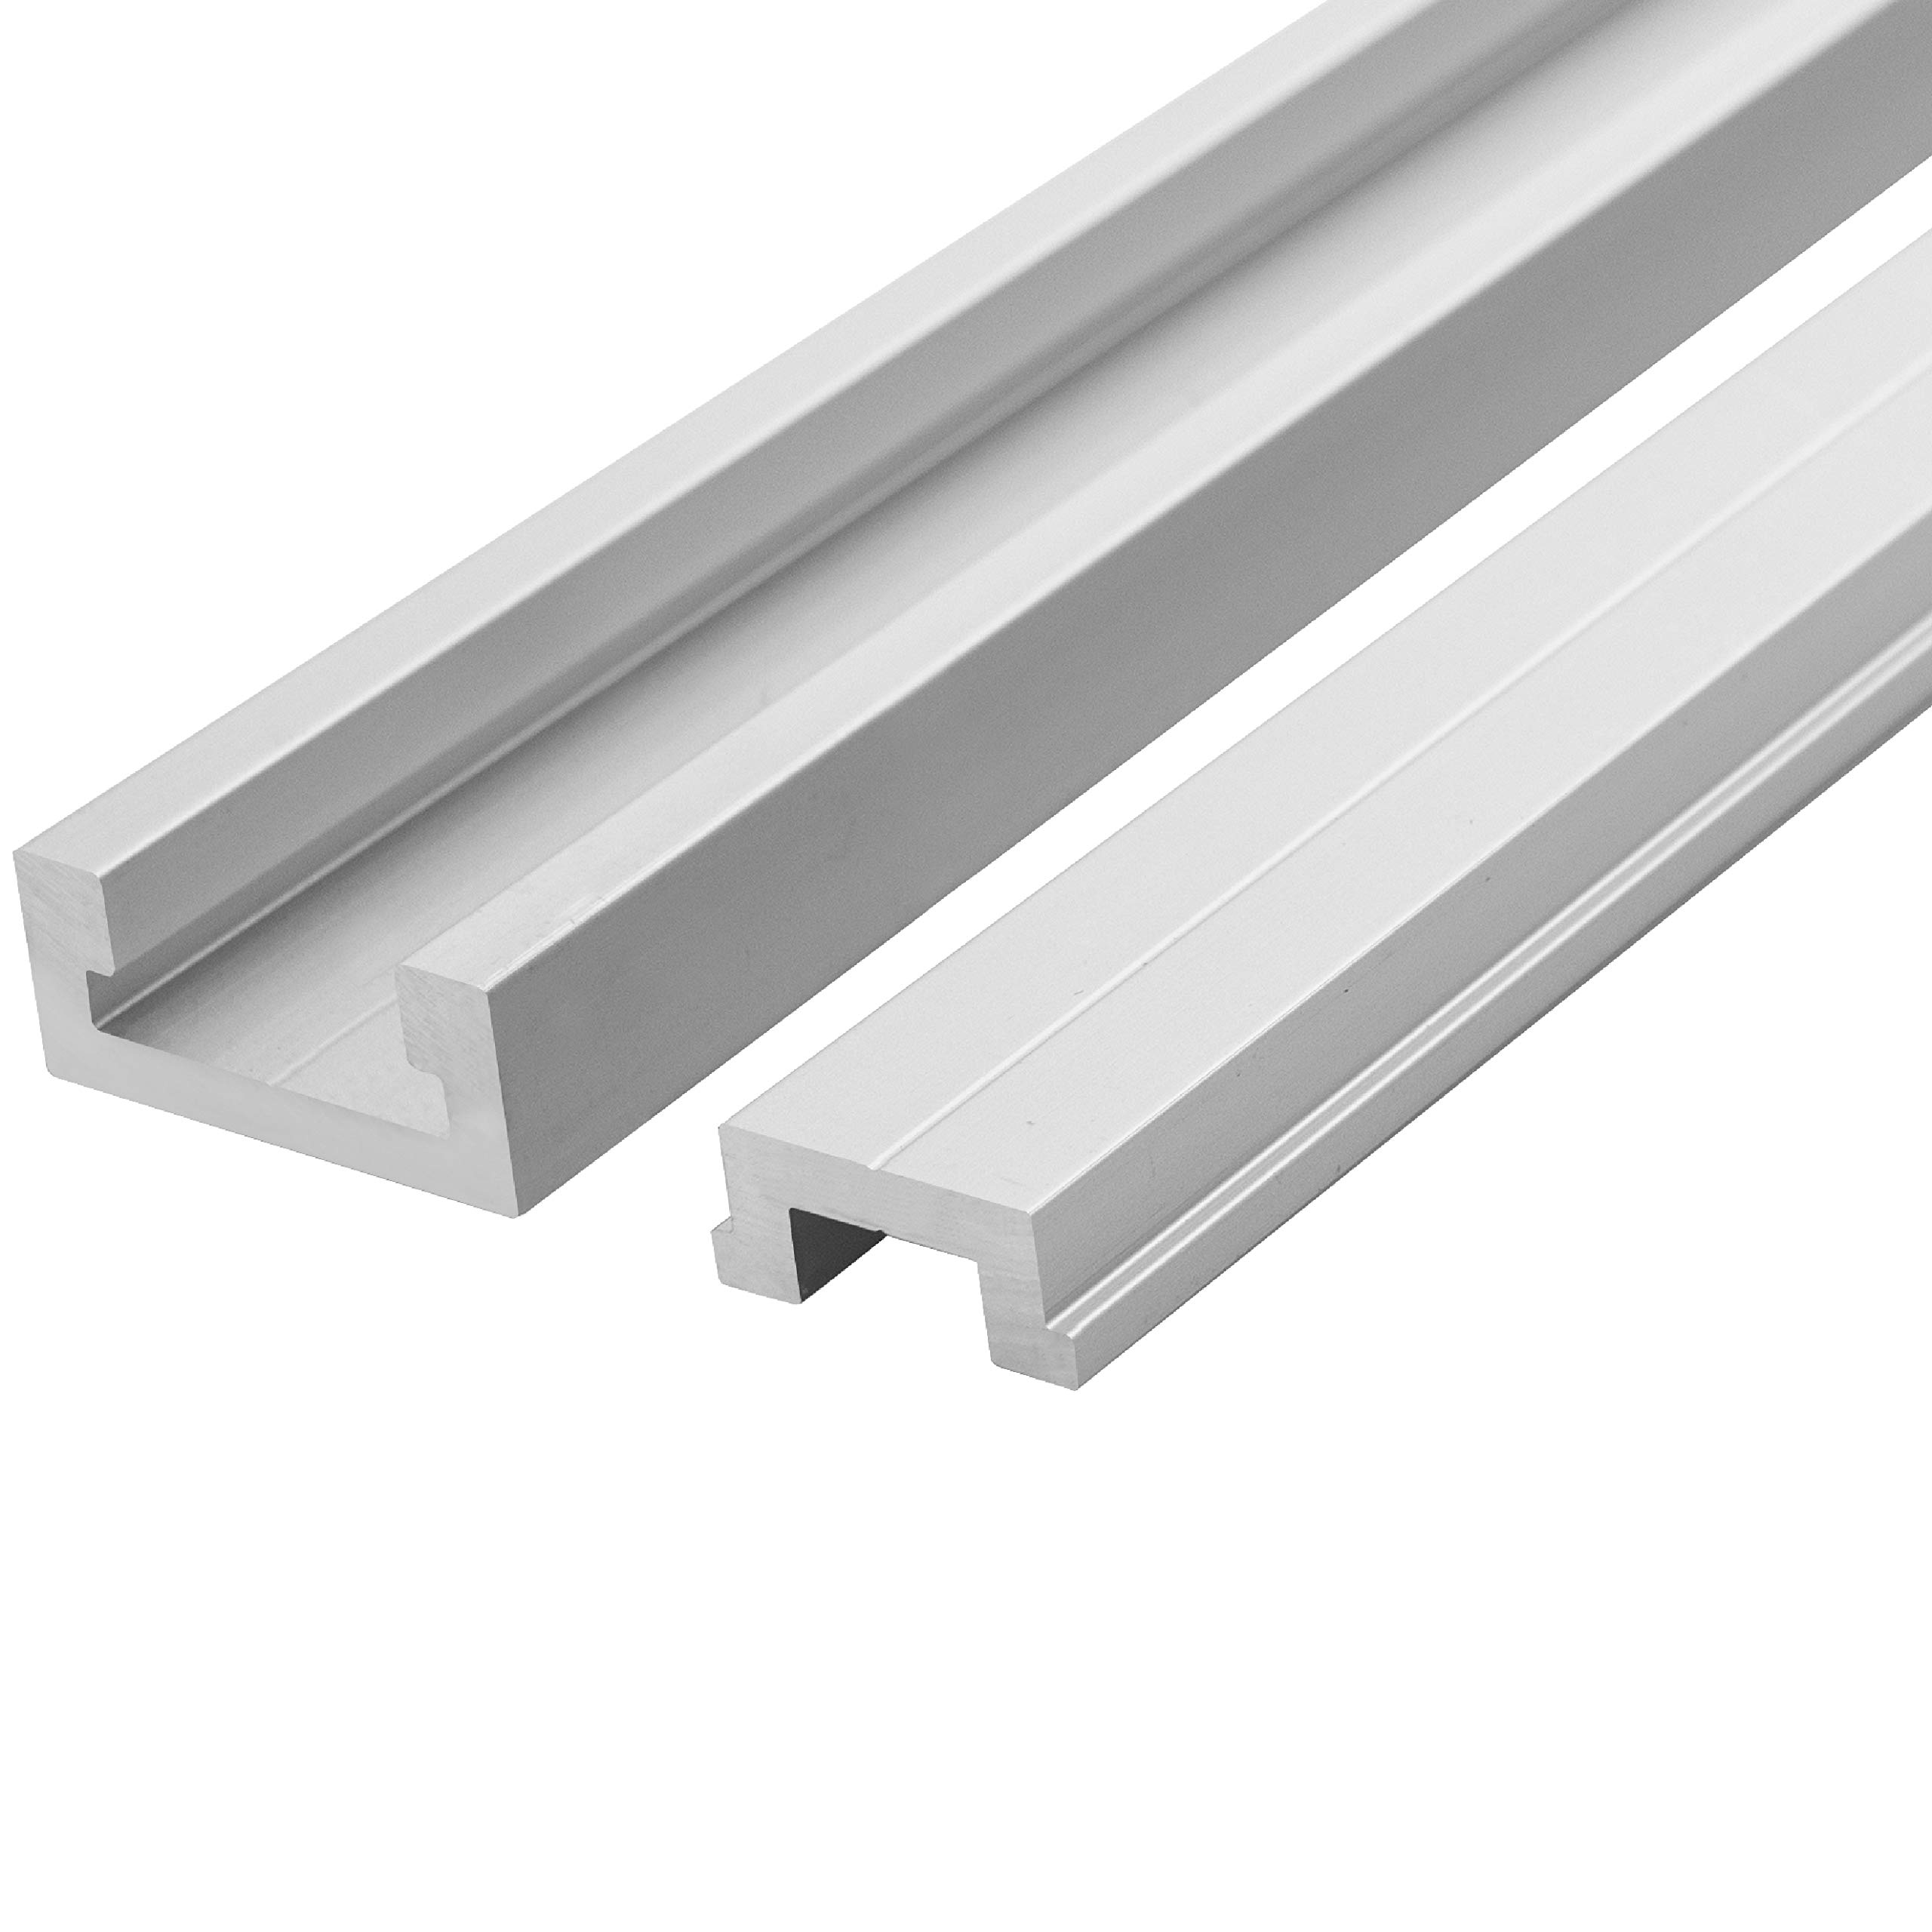 Anodized Aluminum Miter T Track w/T-Bar Rail for Jigs Fixtures Sleds Router Tables and General Woodworking 48 inch MADE IN THE USA